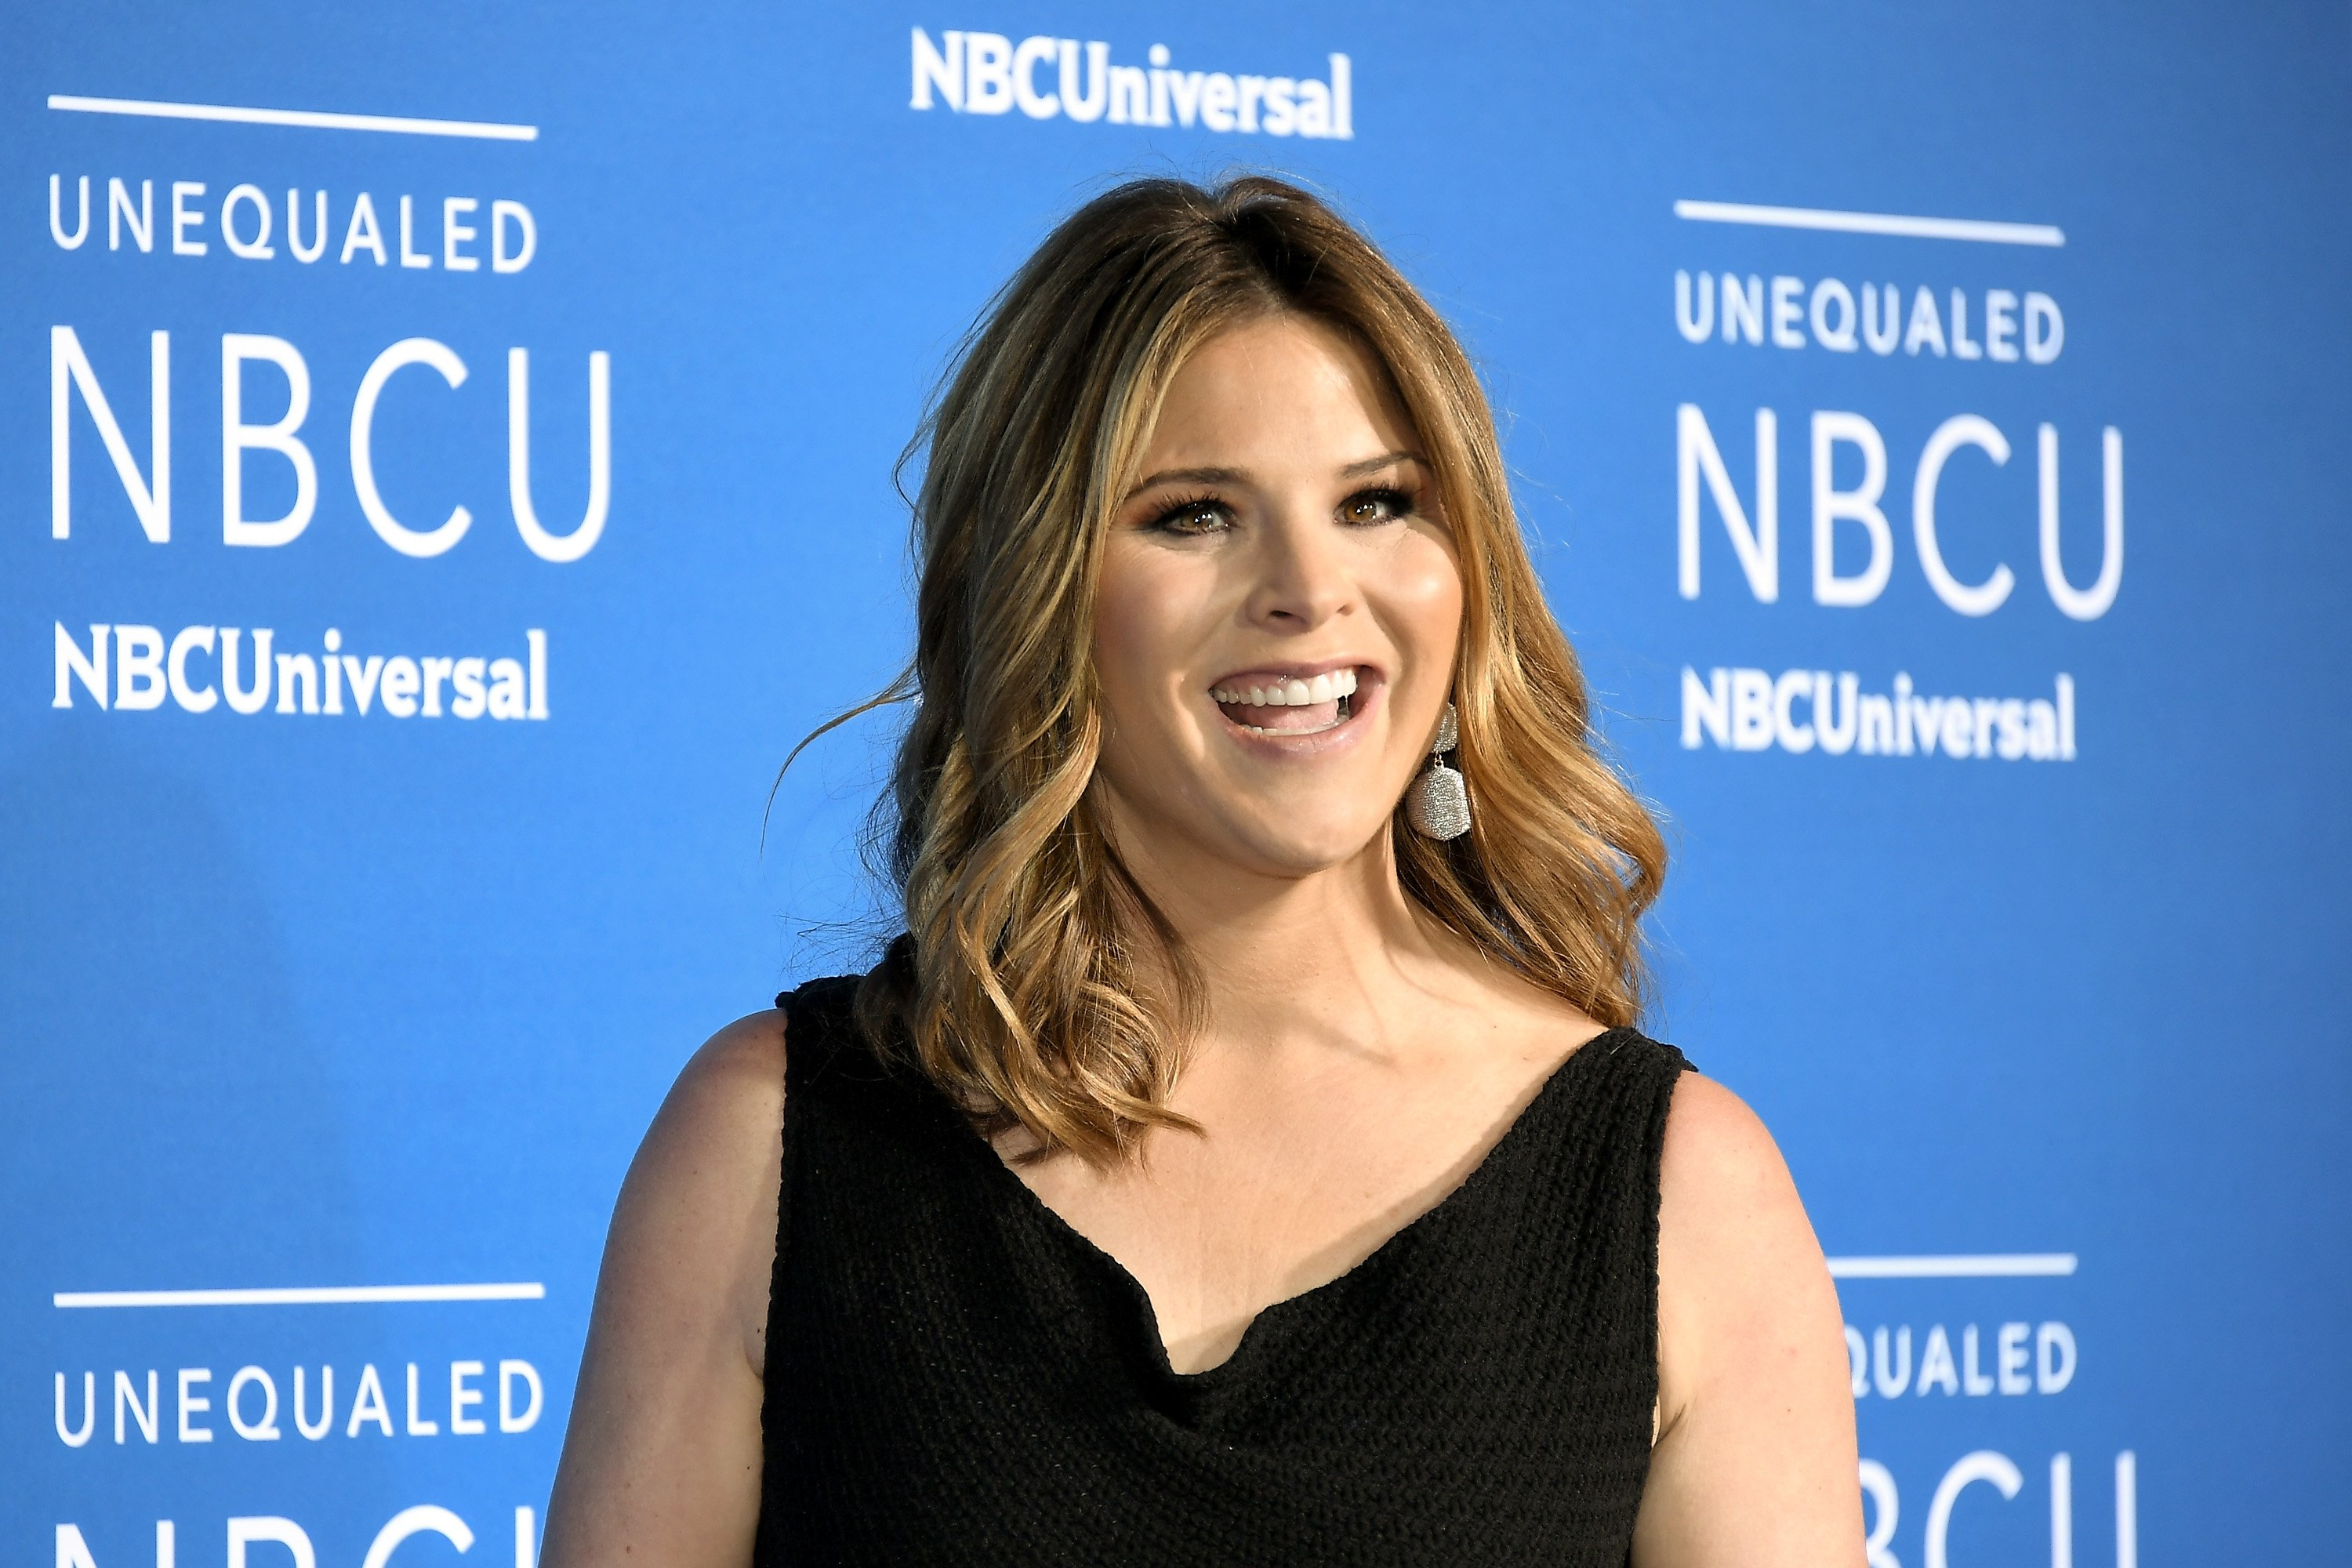 Image Credits: Getty Images / Dia Dipasupil | Jenna Bush Hager attends the 2017 NBCUniversal Upfront at Radio City Music Hall on May 15, 2017 in New York City.